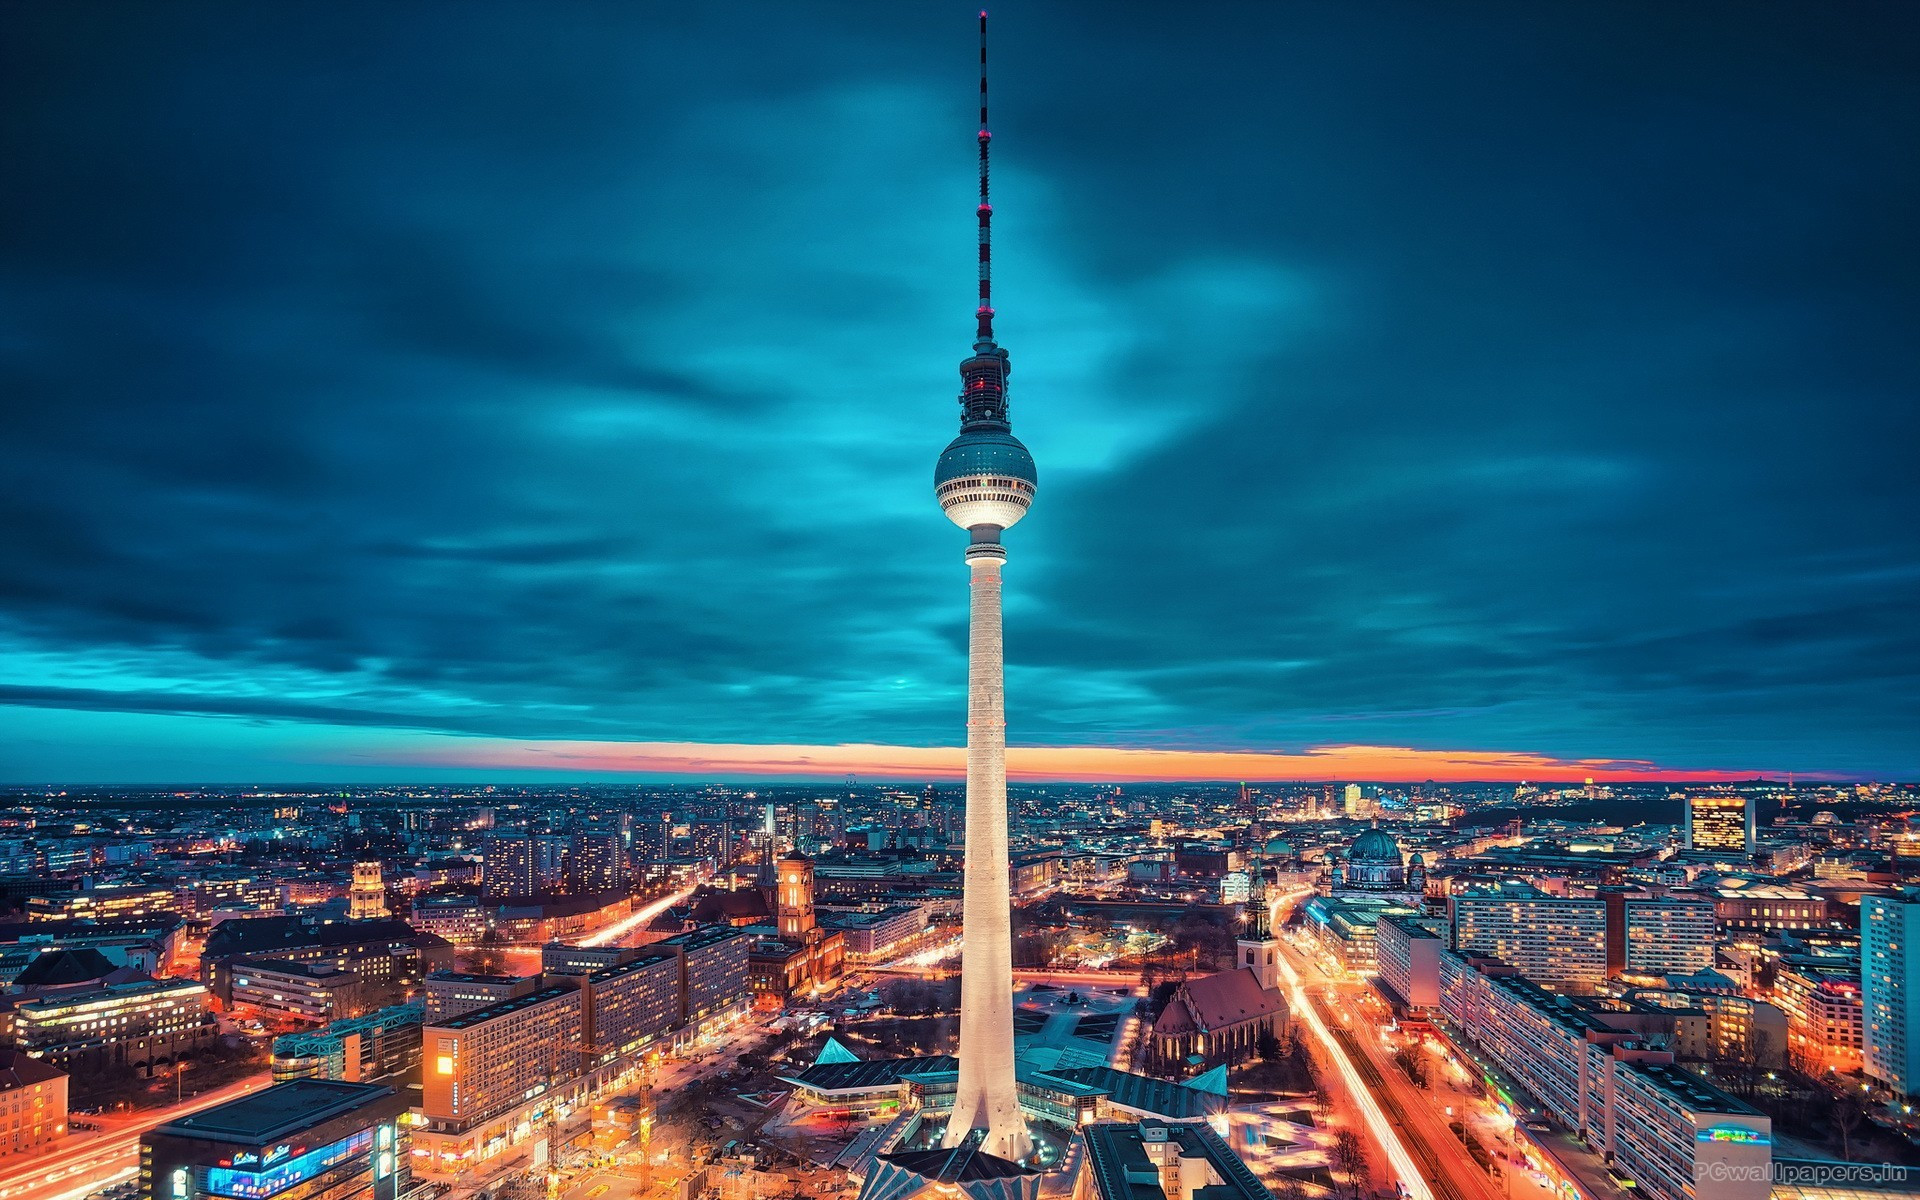 Berlin Television Tower (Fernsehturm), Things to do in Berlin